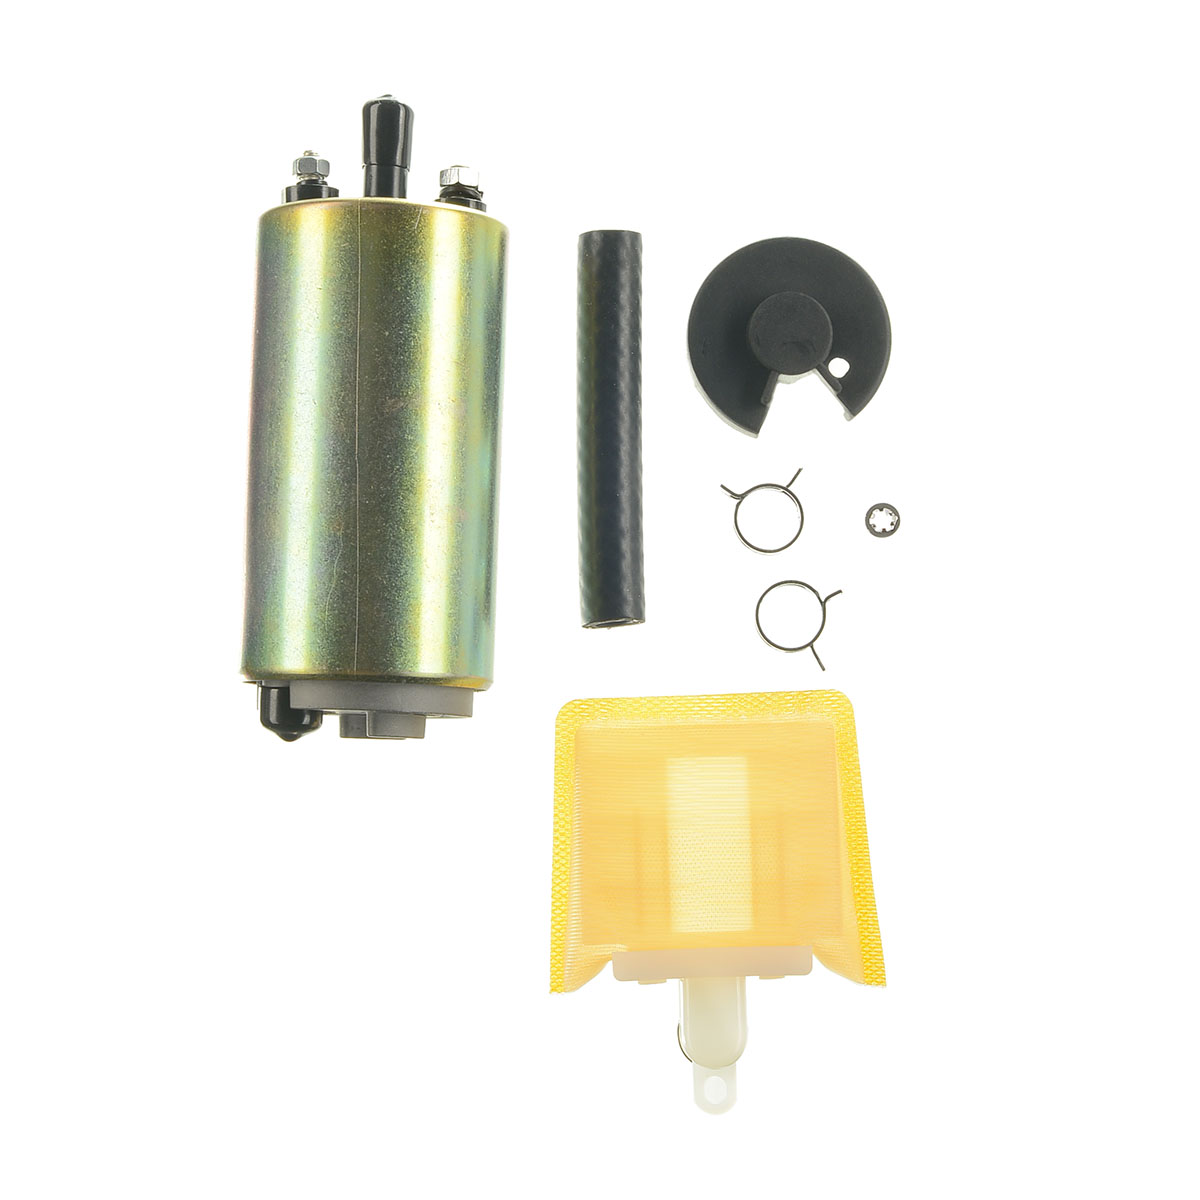 electric fuel pump for toyota camry sv21 i4 2 0l 1987 1988 1989 1990 1991 1992 1993 3s fe sedan wagon in fuel pumps from automobiles motorcycles on  [ 1200 x 1200 Pixel ]